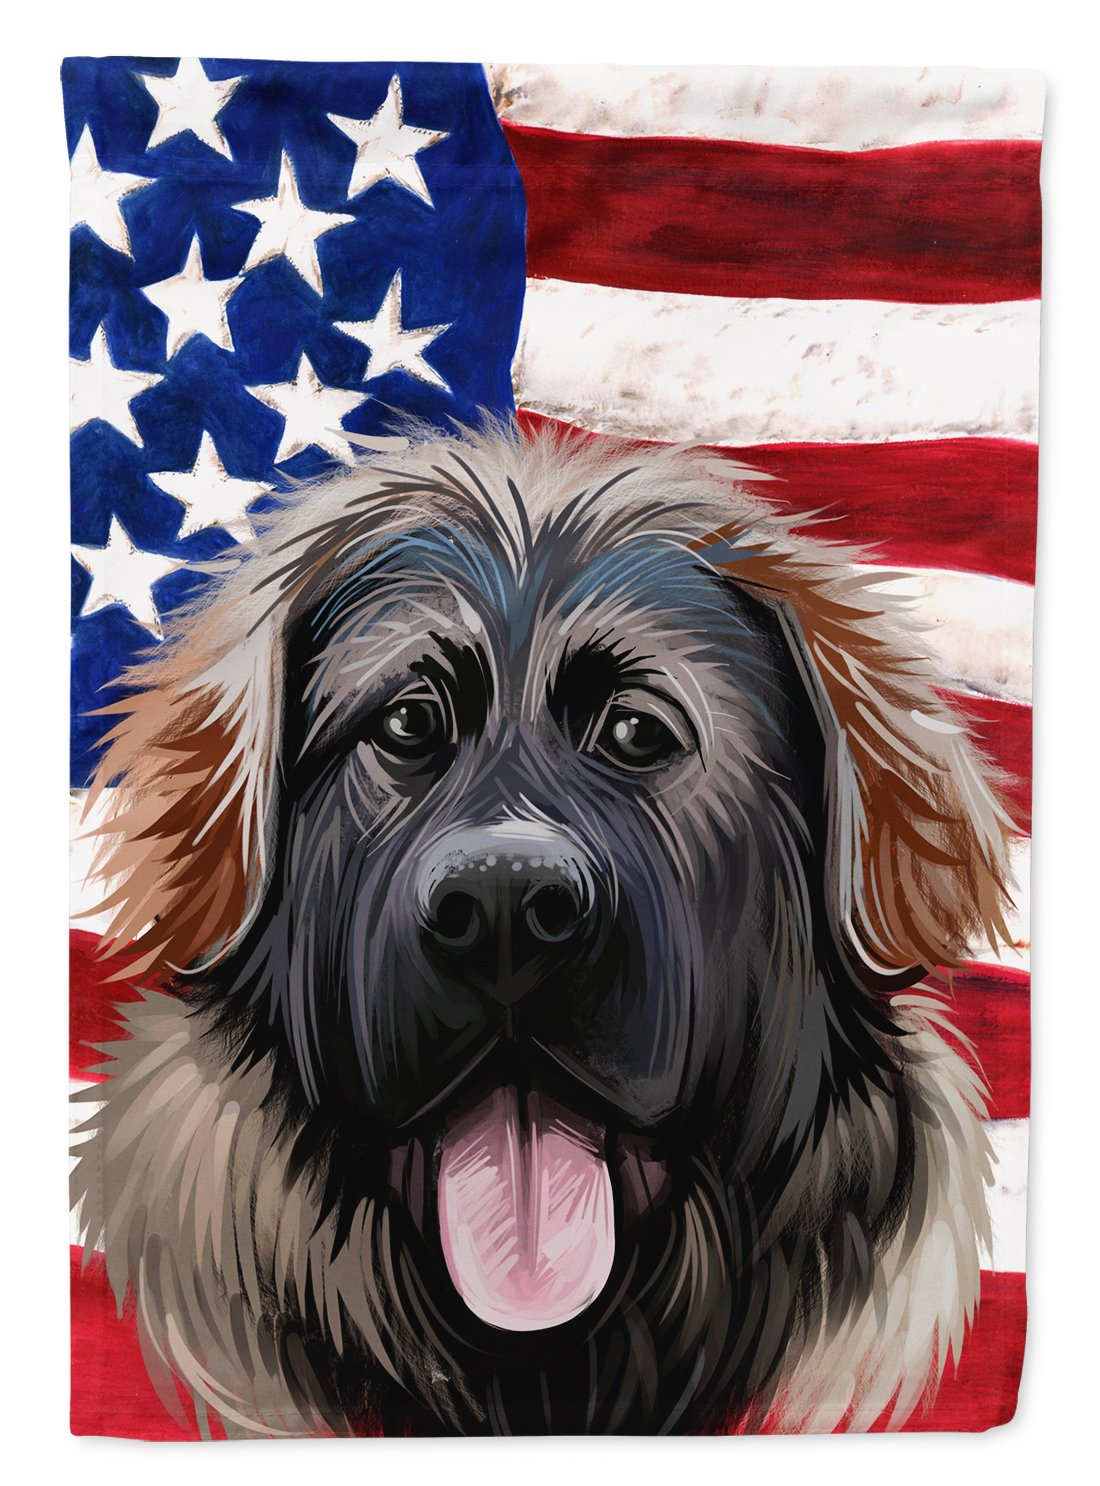 Georgian Shepherd Dog American Flag Flag Garden Size CK6532GF by Caroline's Treasures